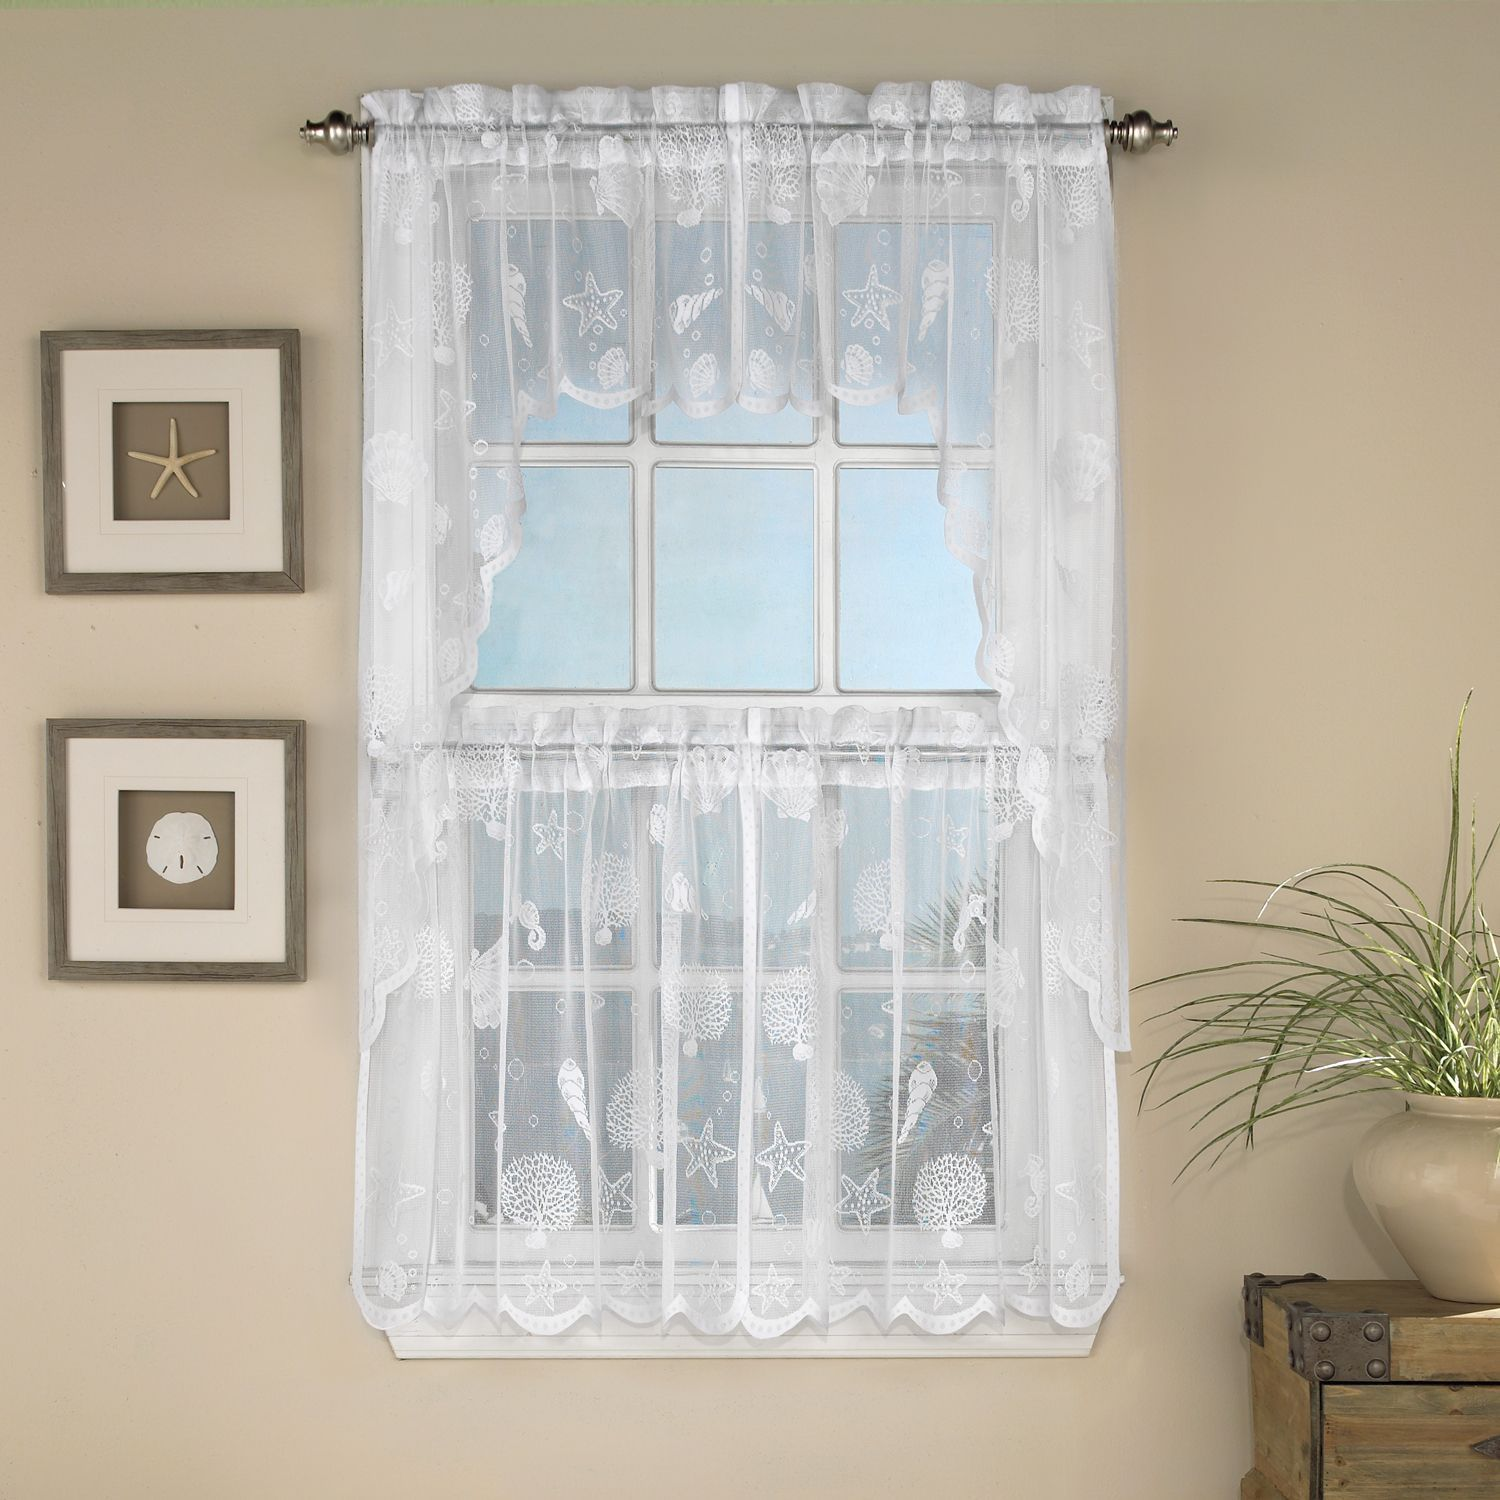 Marine Life Motif Knitted Lace Window Curtain Pieces Valance Ivory Beige Off White Size 56 X 12 All Polyester Wildlife